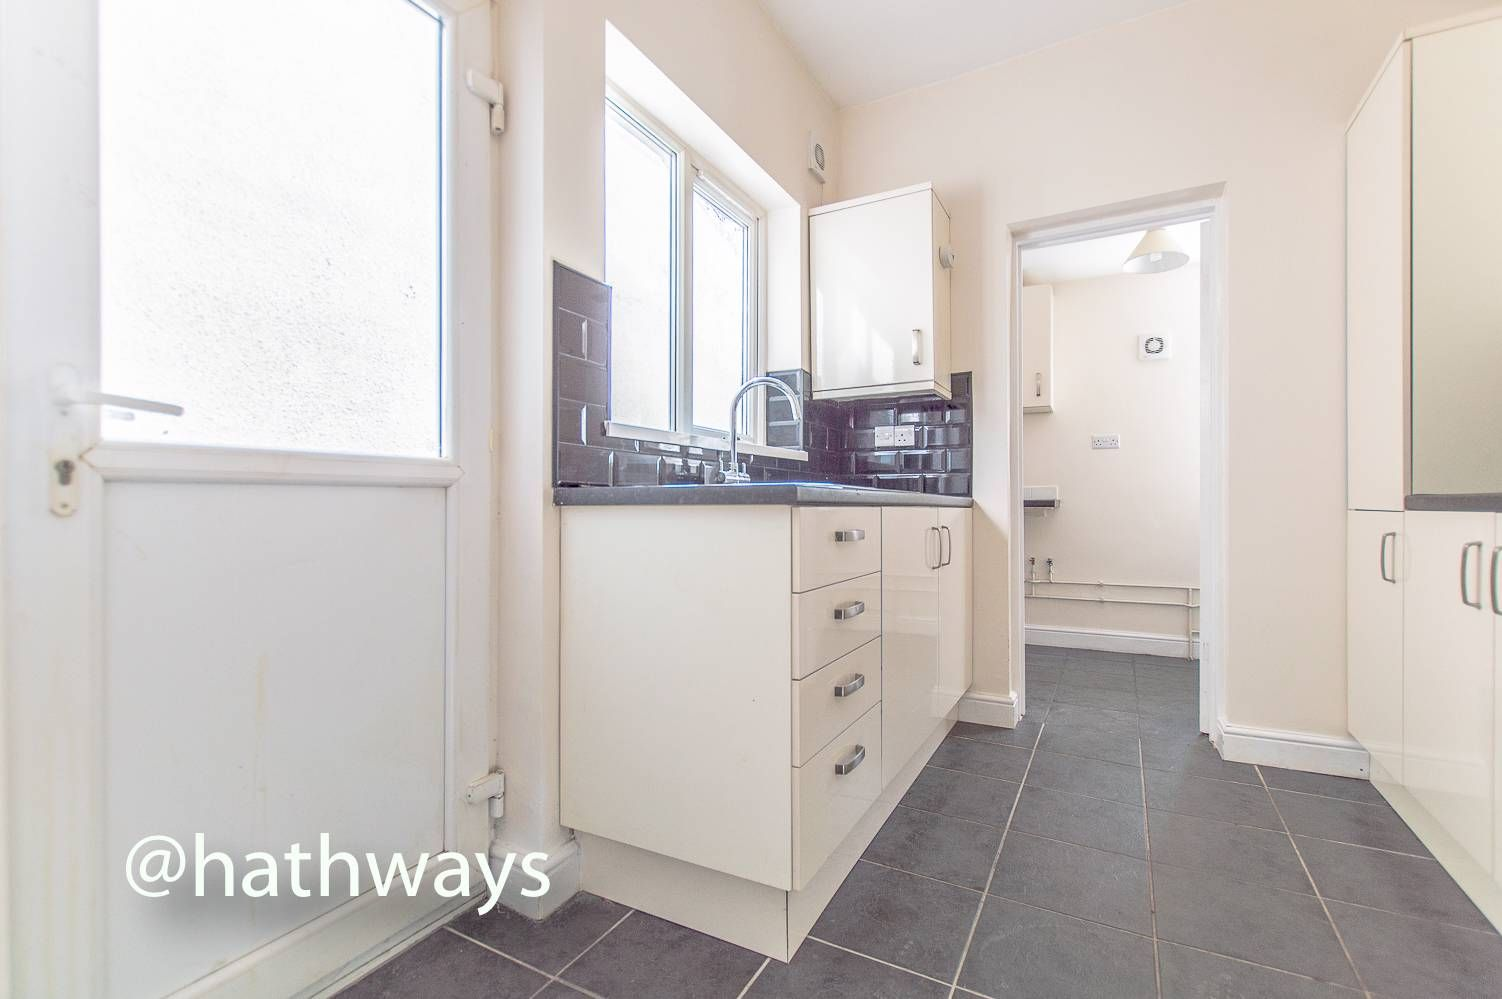 3 bed house for sale in Glenview 11